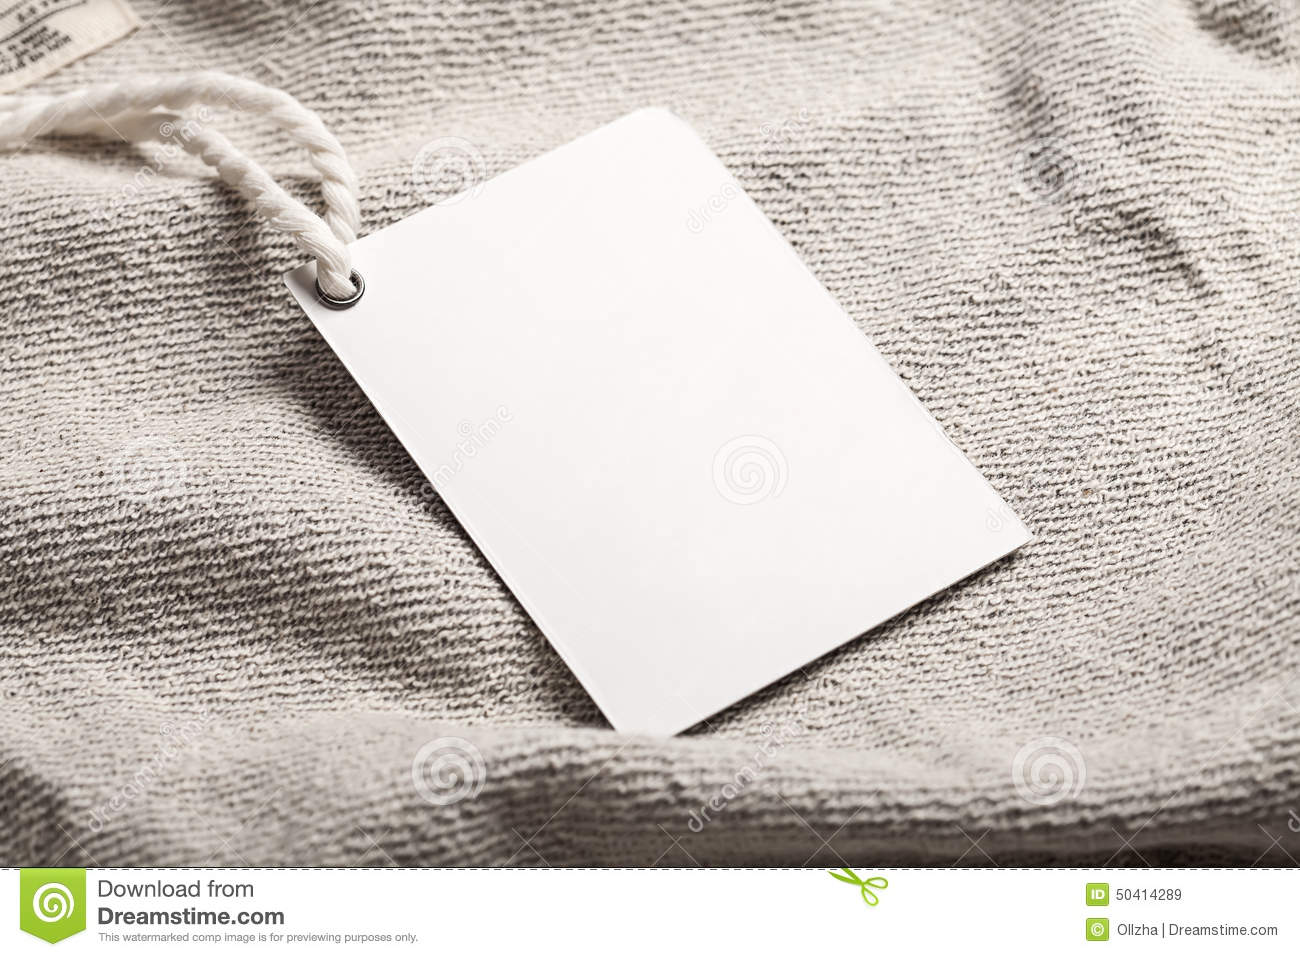 Cloth label tag blank mockup stock image image 50414289 for Blank label clothing